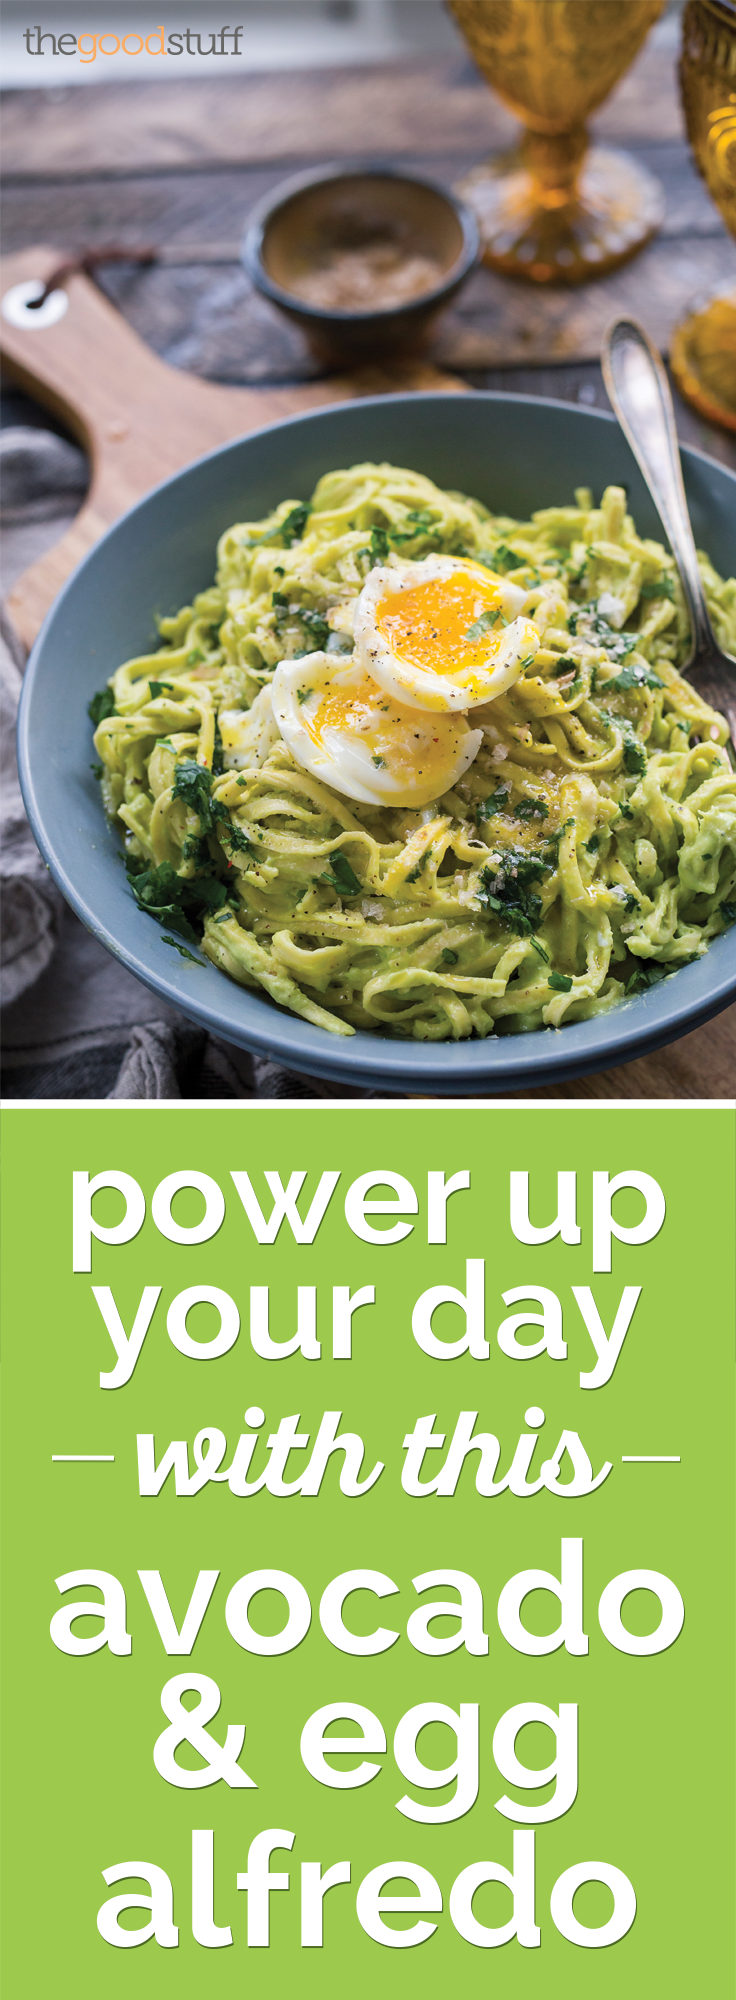 Power Up Your Day with this Avocado & Egg Alfredo | thegoodstuff